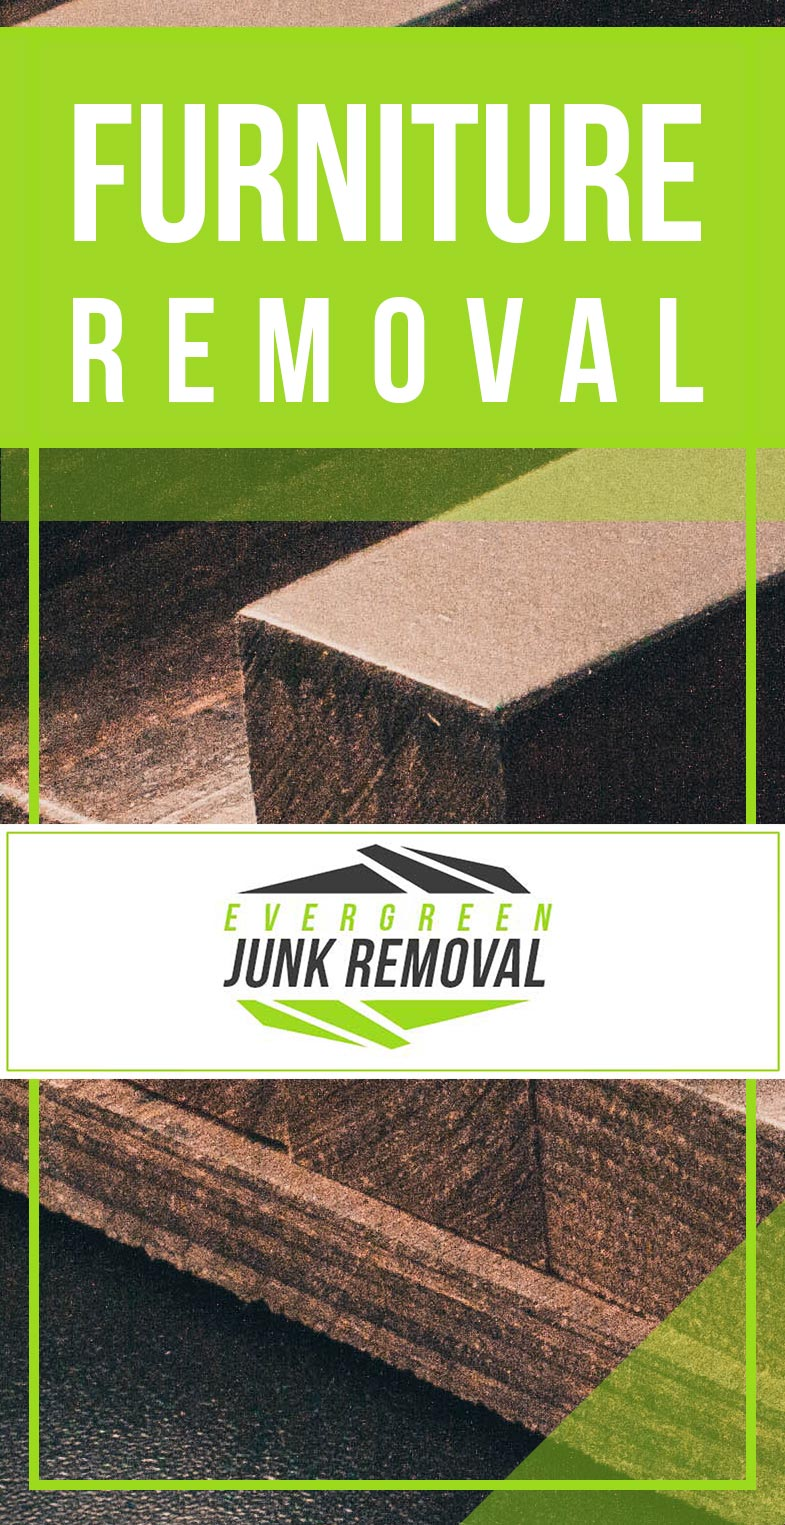 Citrus Heights Furniture Removal